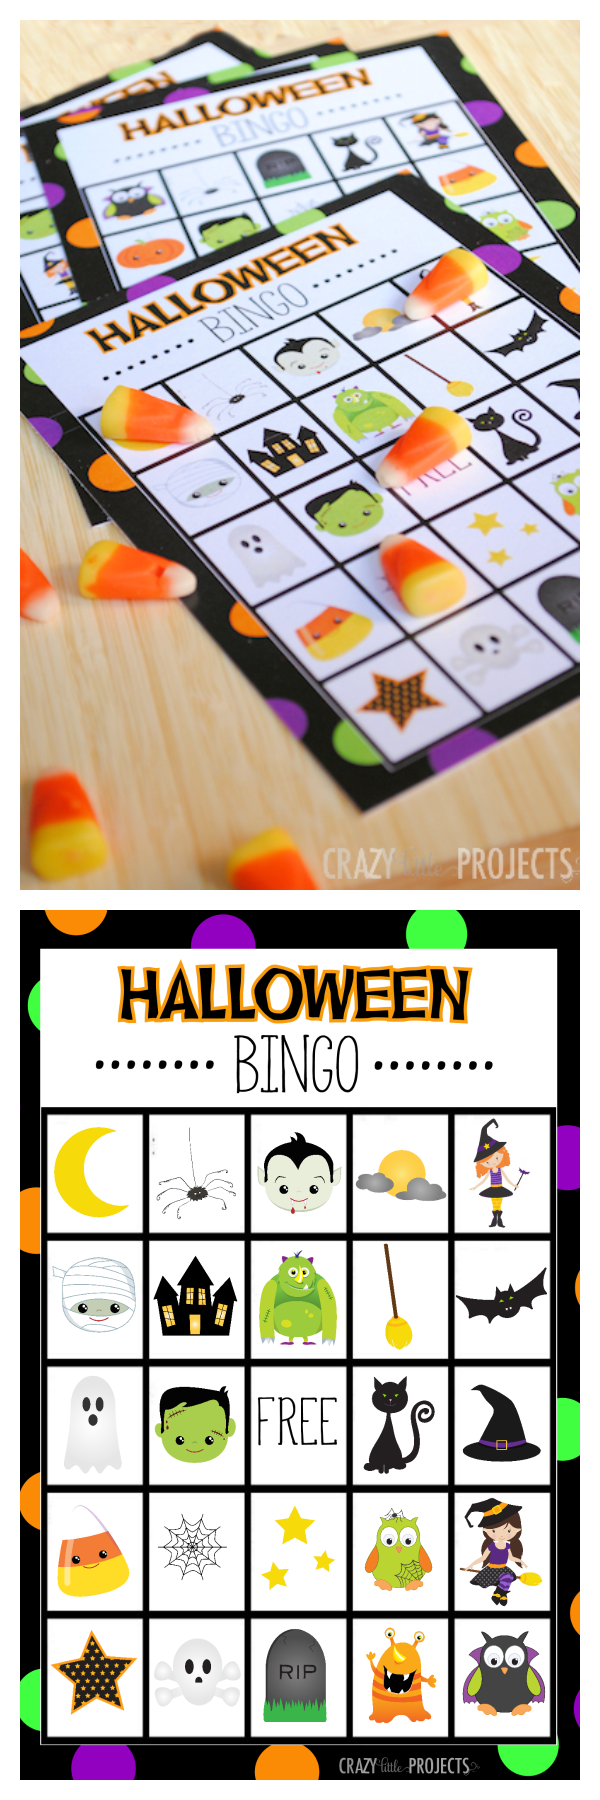 free printable halloween bingo game set perfect for kids parties and school parties - Preschool Halloween Bingo